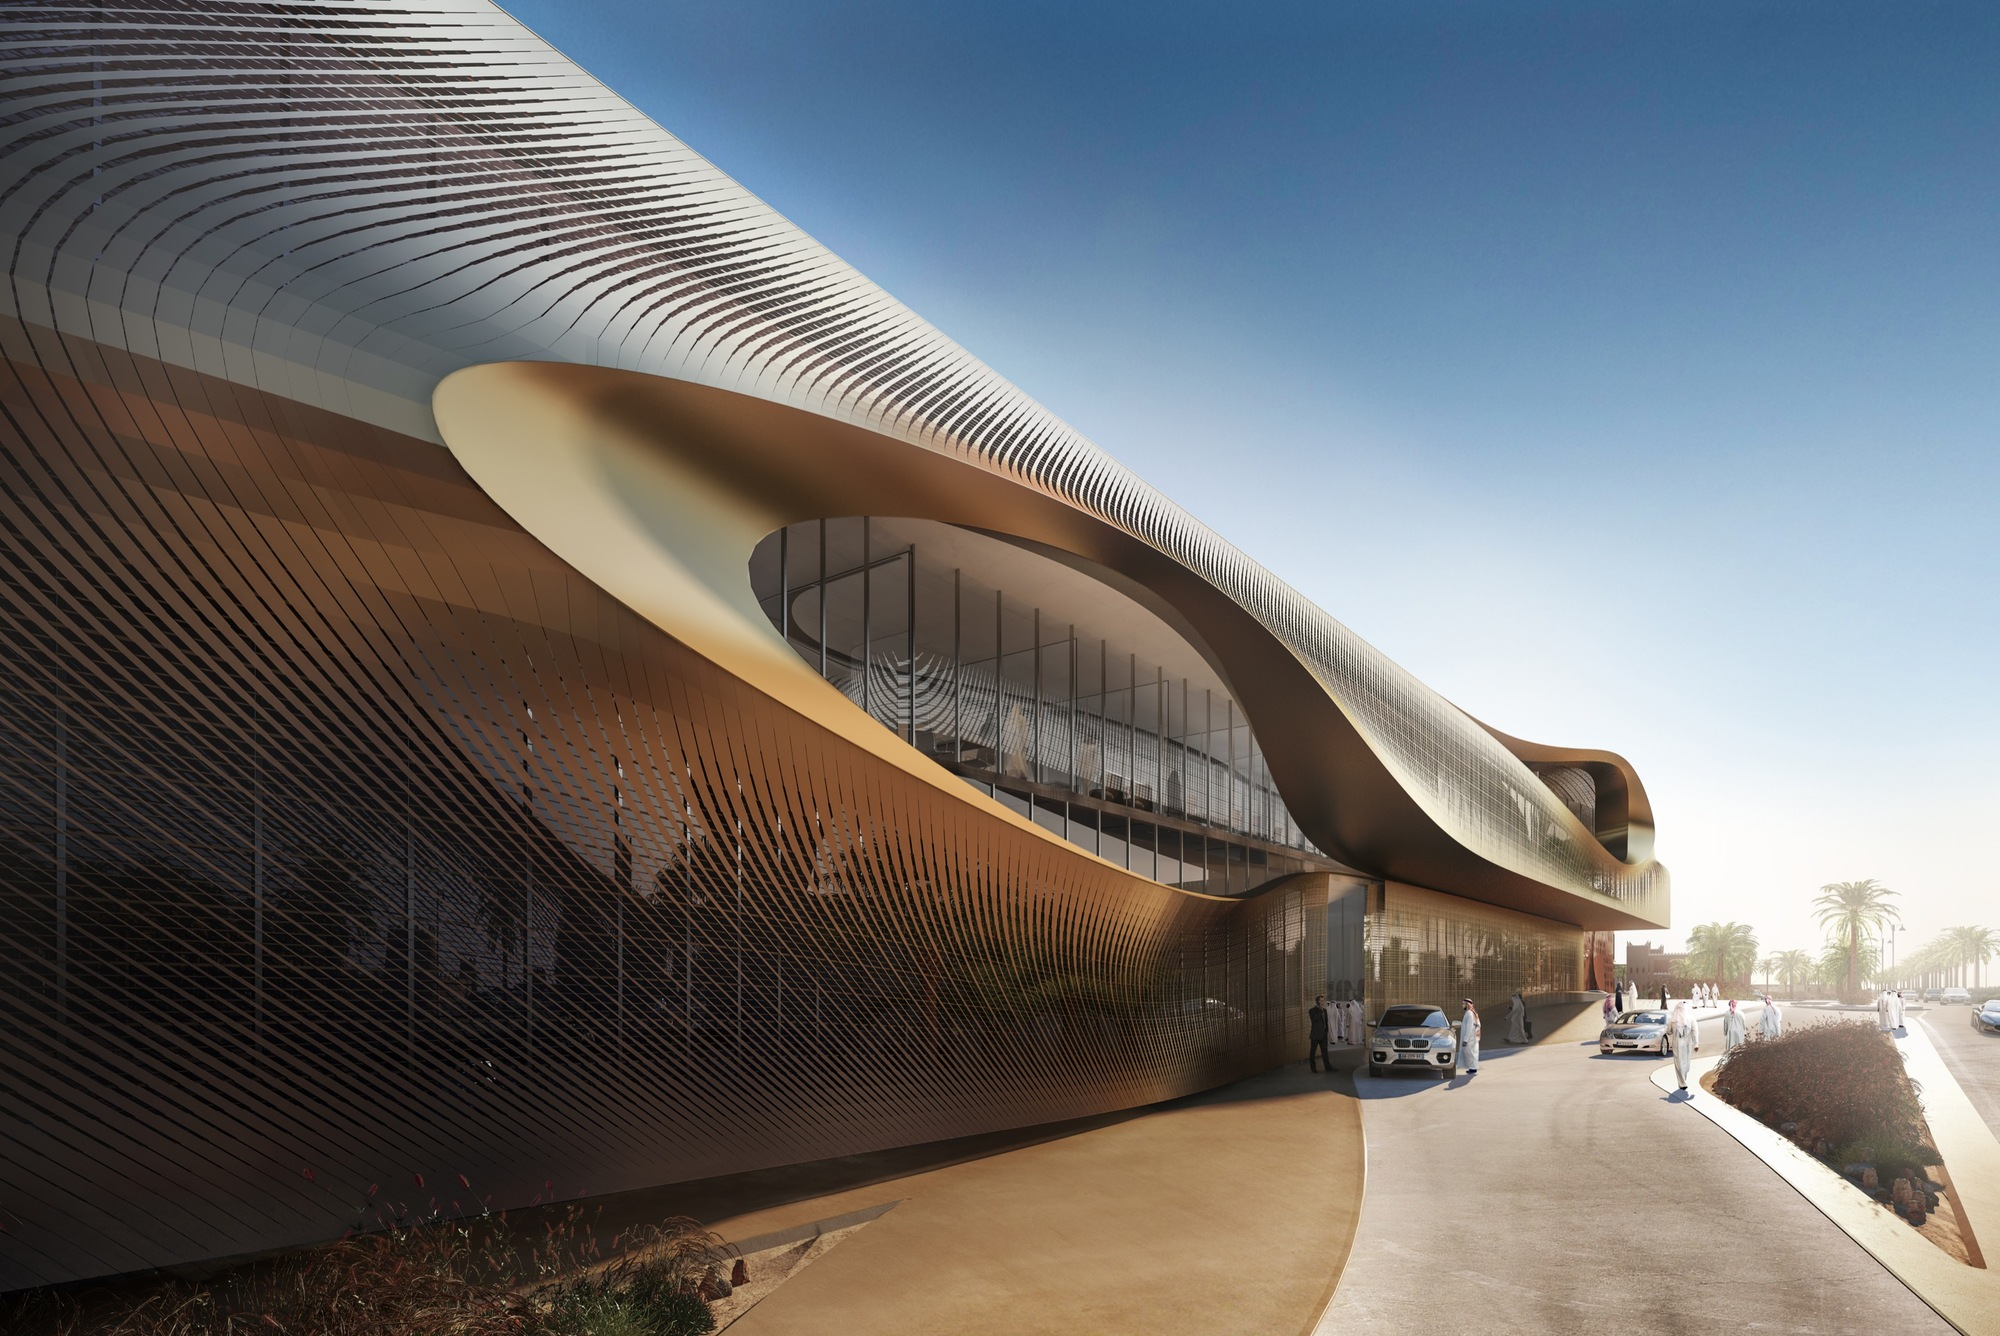 Zaha Hadid Architects Wins Competition For Oasis Inspired